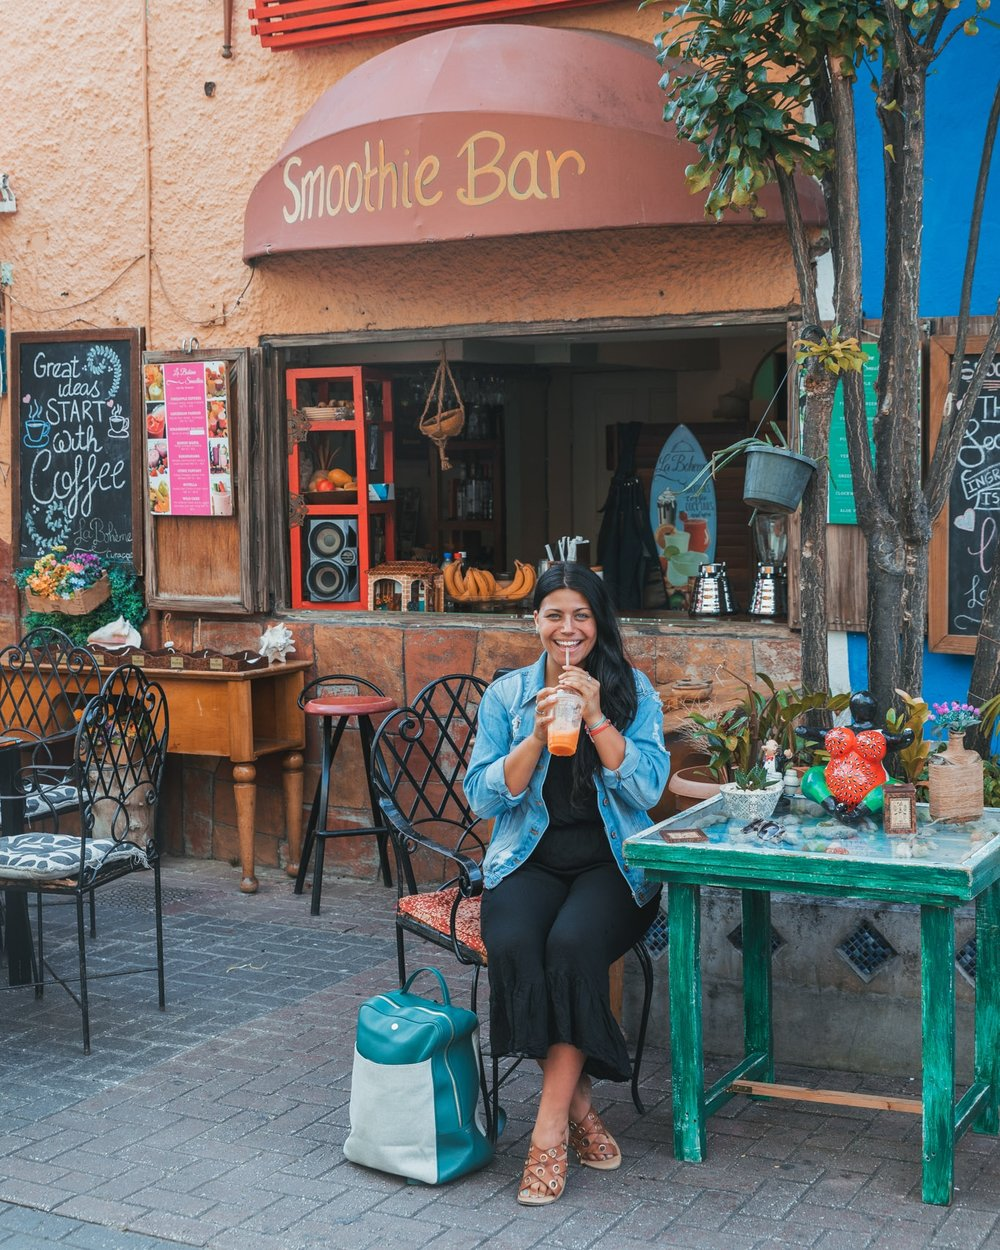 A smoothie shop cafe in Willemstad, Curaçao // 20 Photos to Show You Why Curaçao Needs to Be On Your Travel Radar // www.readysetjetset.net #readysetjetset #curacao #caribbean #beach #ocean #paradise #travel